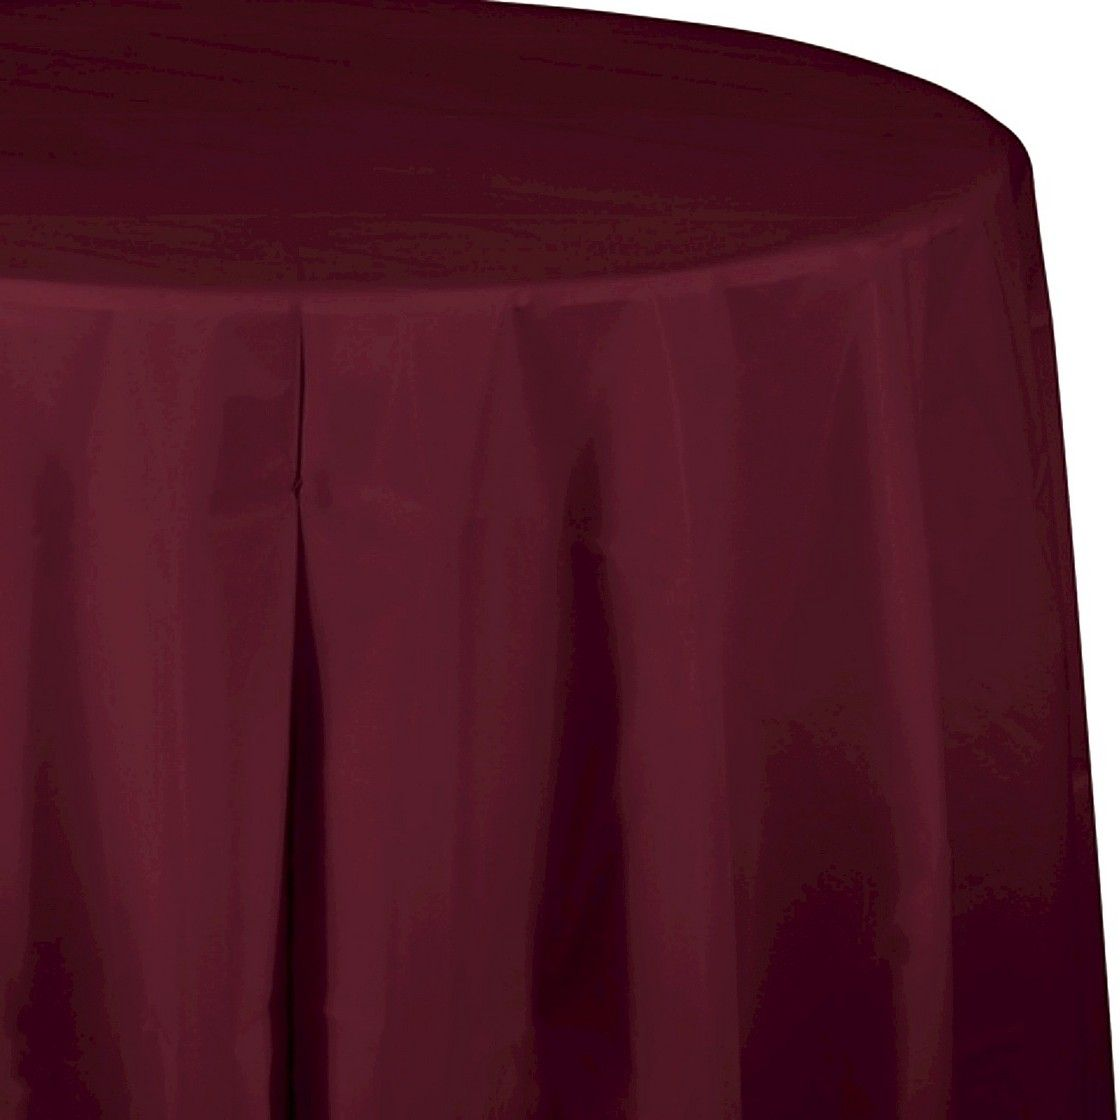 Burgundy Red Disposable Tablecloth With Images Table Cloth Round Table Covers Round Tablecloth